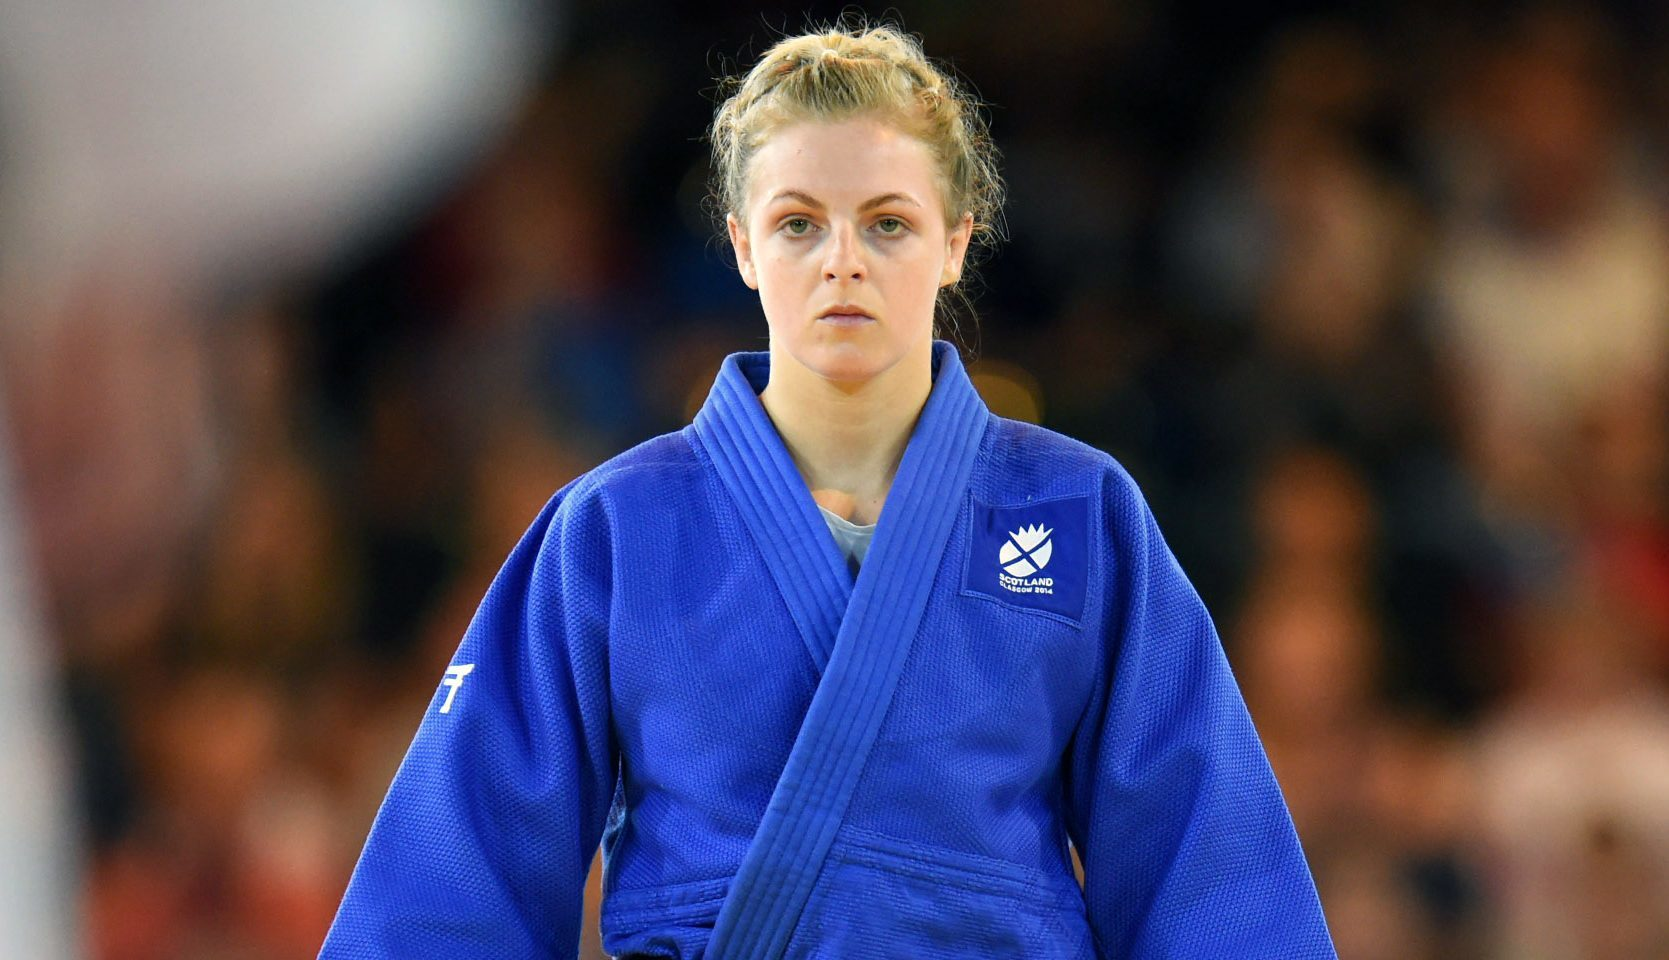 Stephanie Inglis at the 2014 Commonwealth Games.